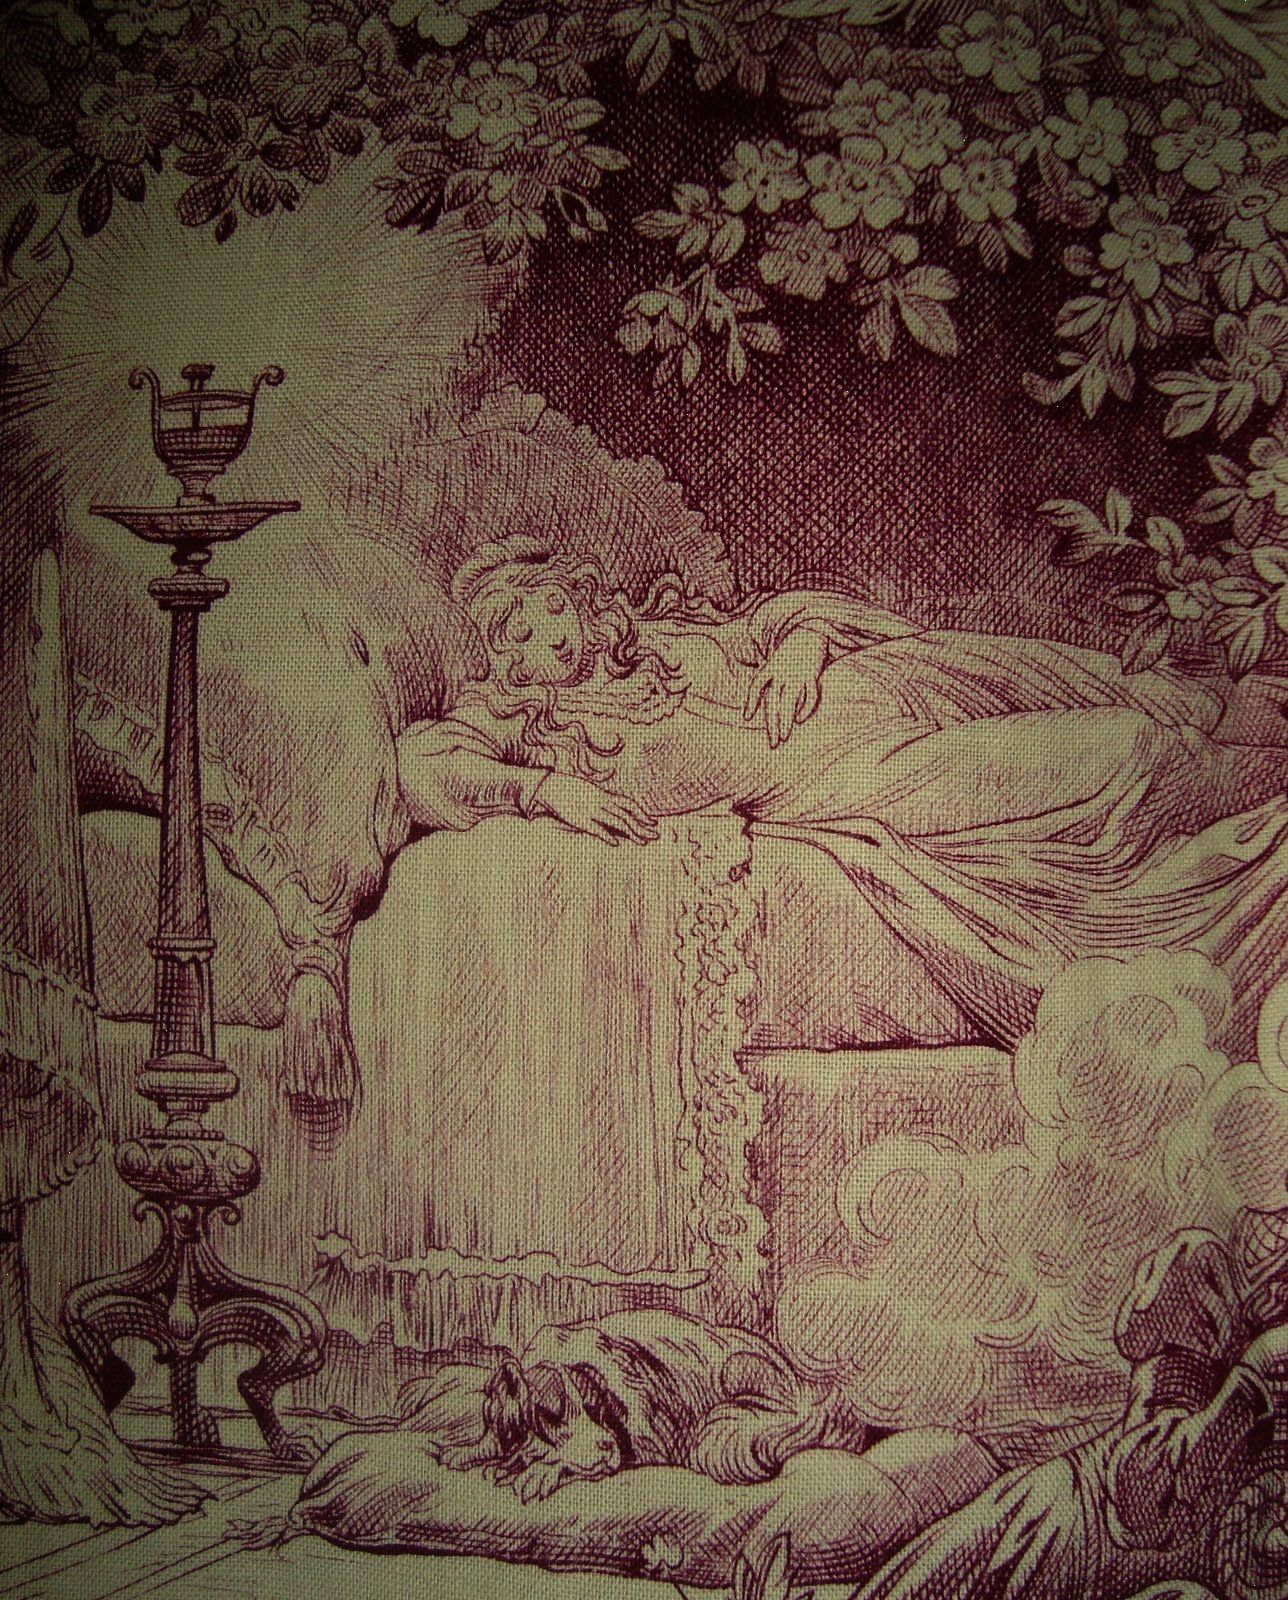 Morgaine Le Fay Antique Textiles And More Sleeping Beauty A